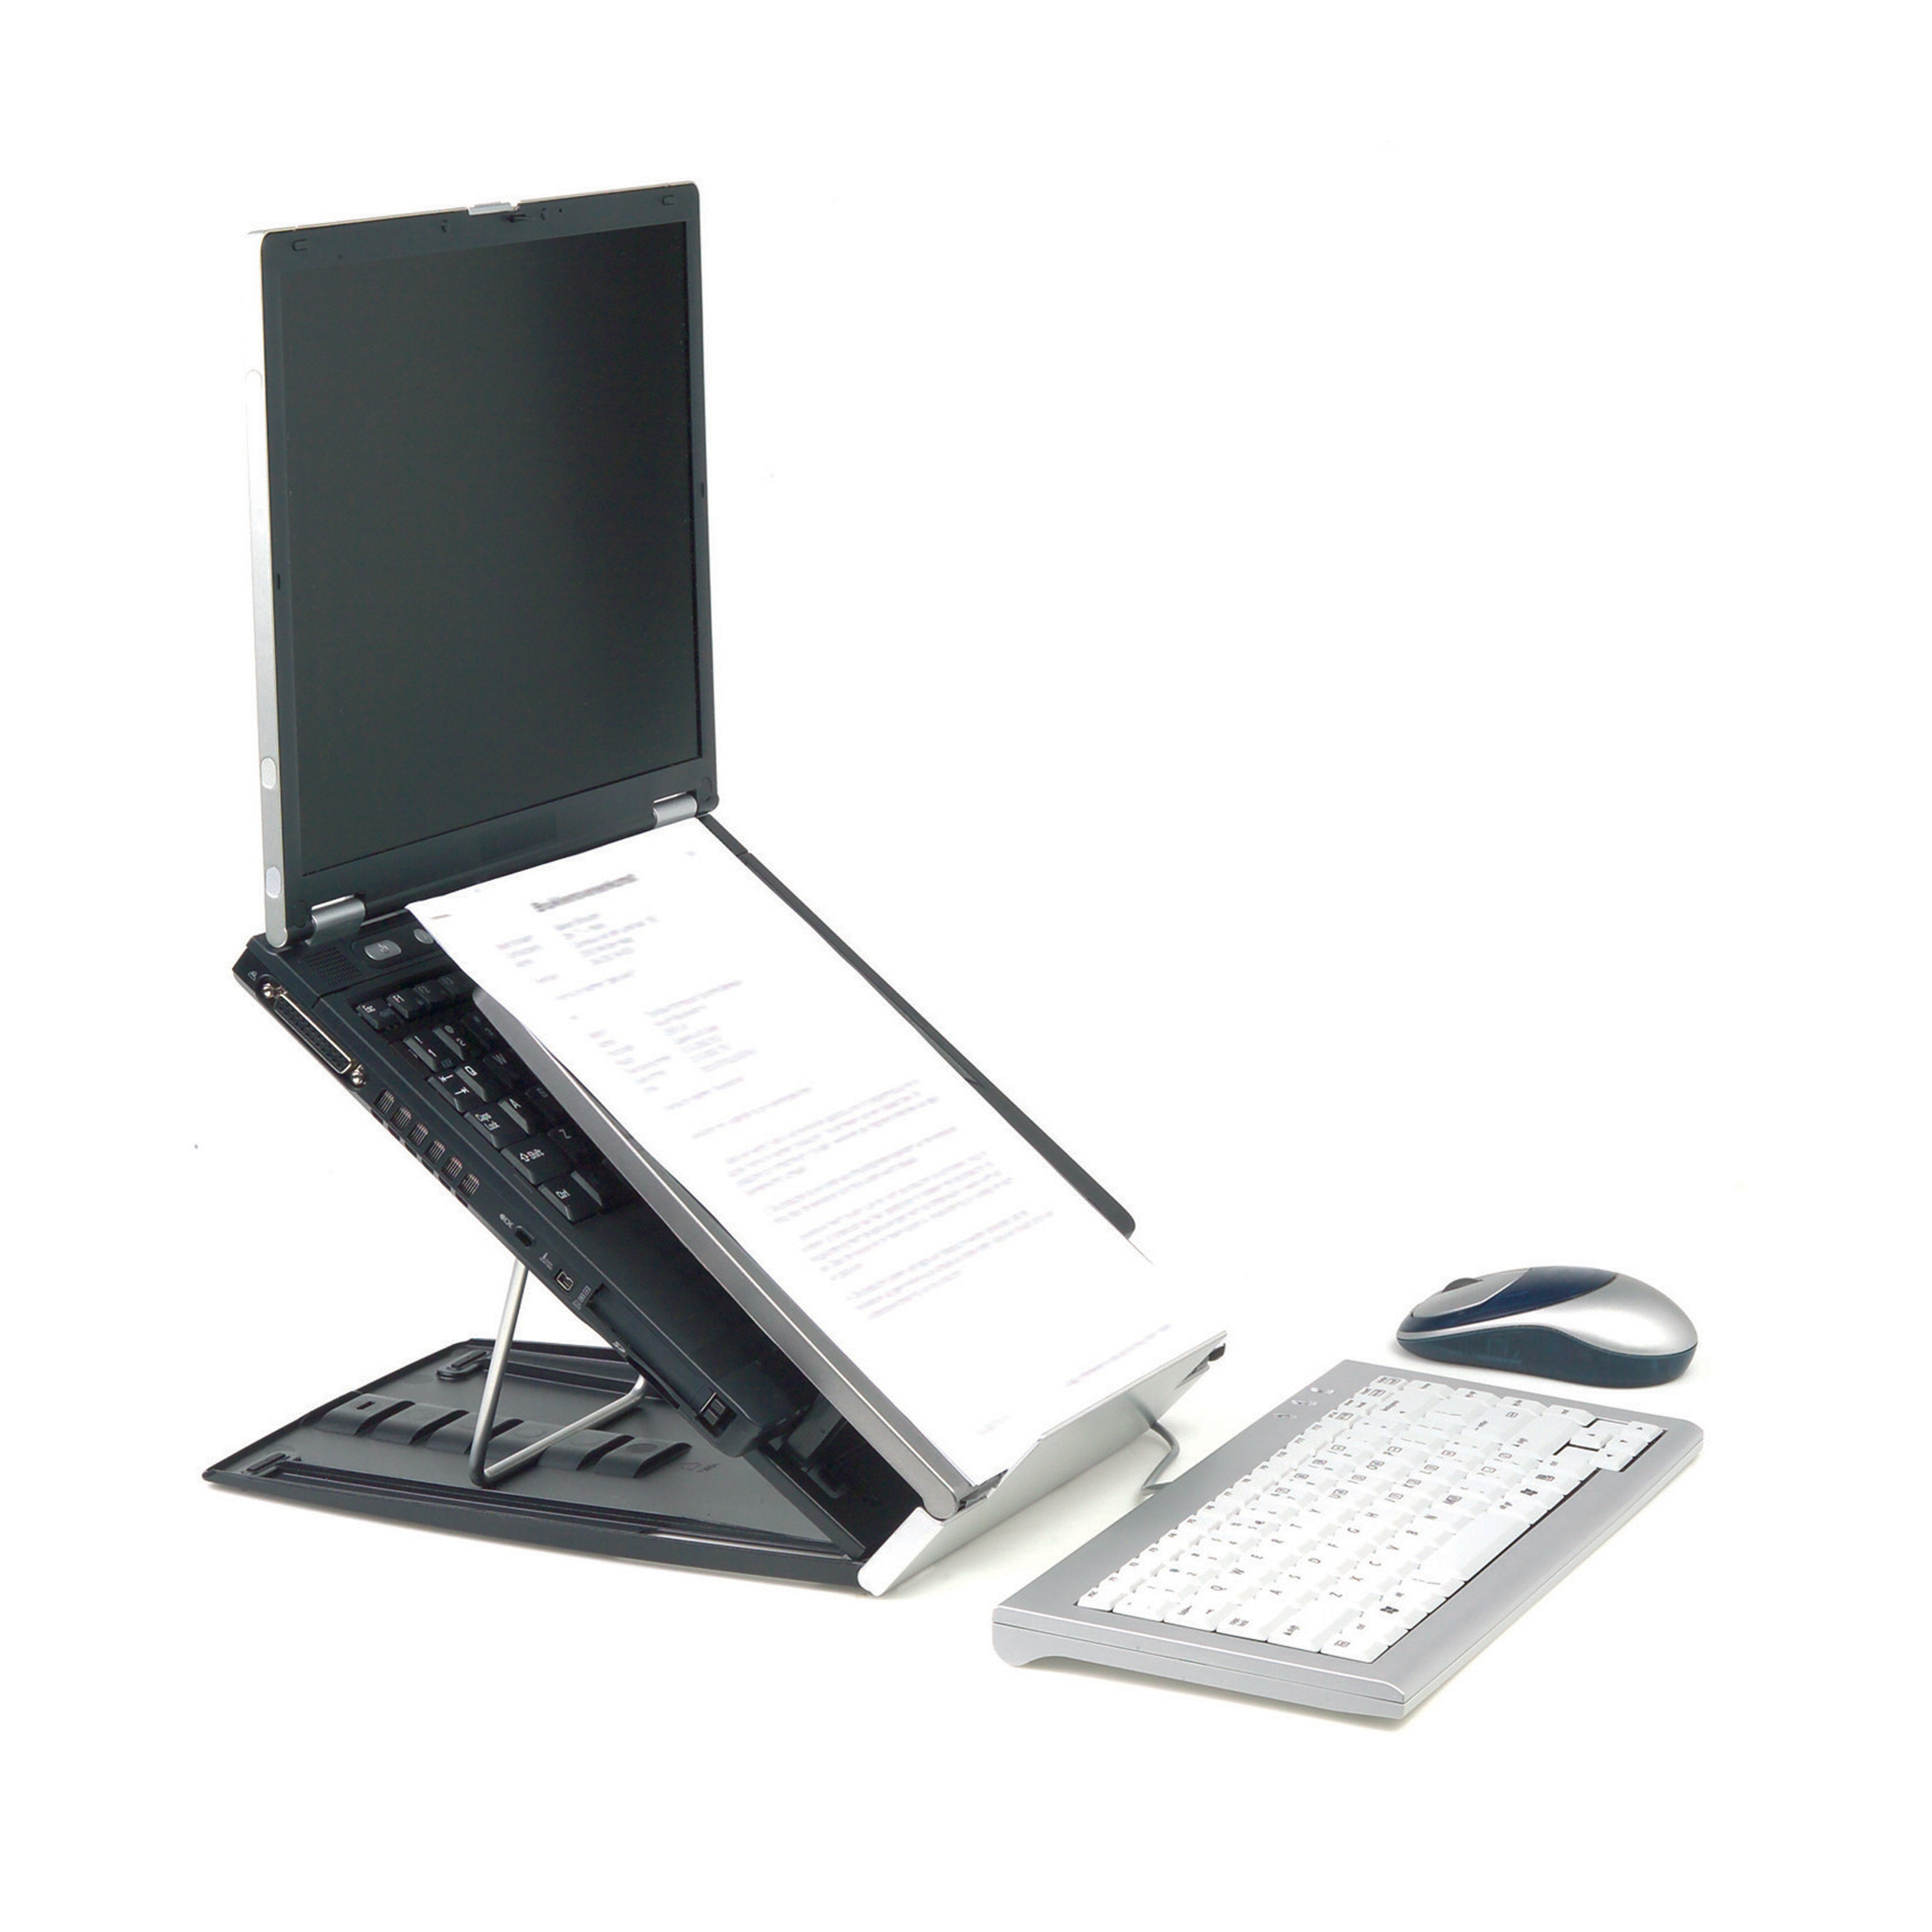 Ergo-Q 330 Laptop Support Stand